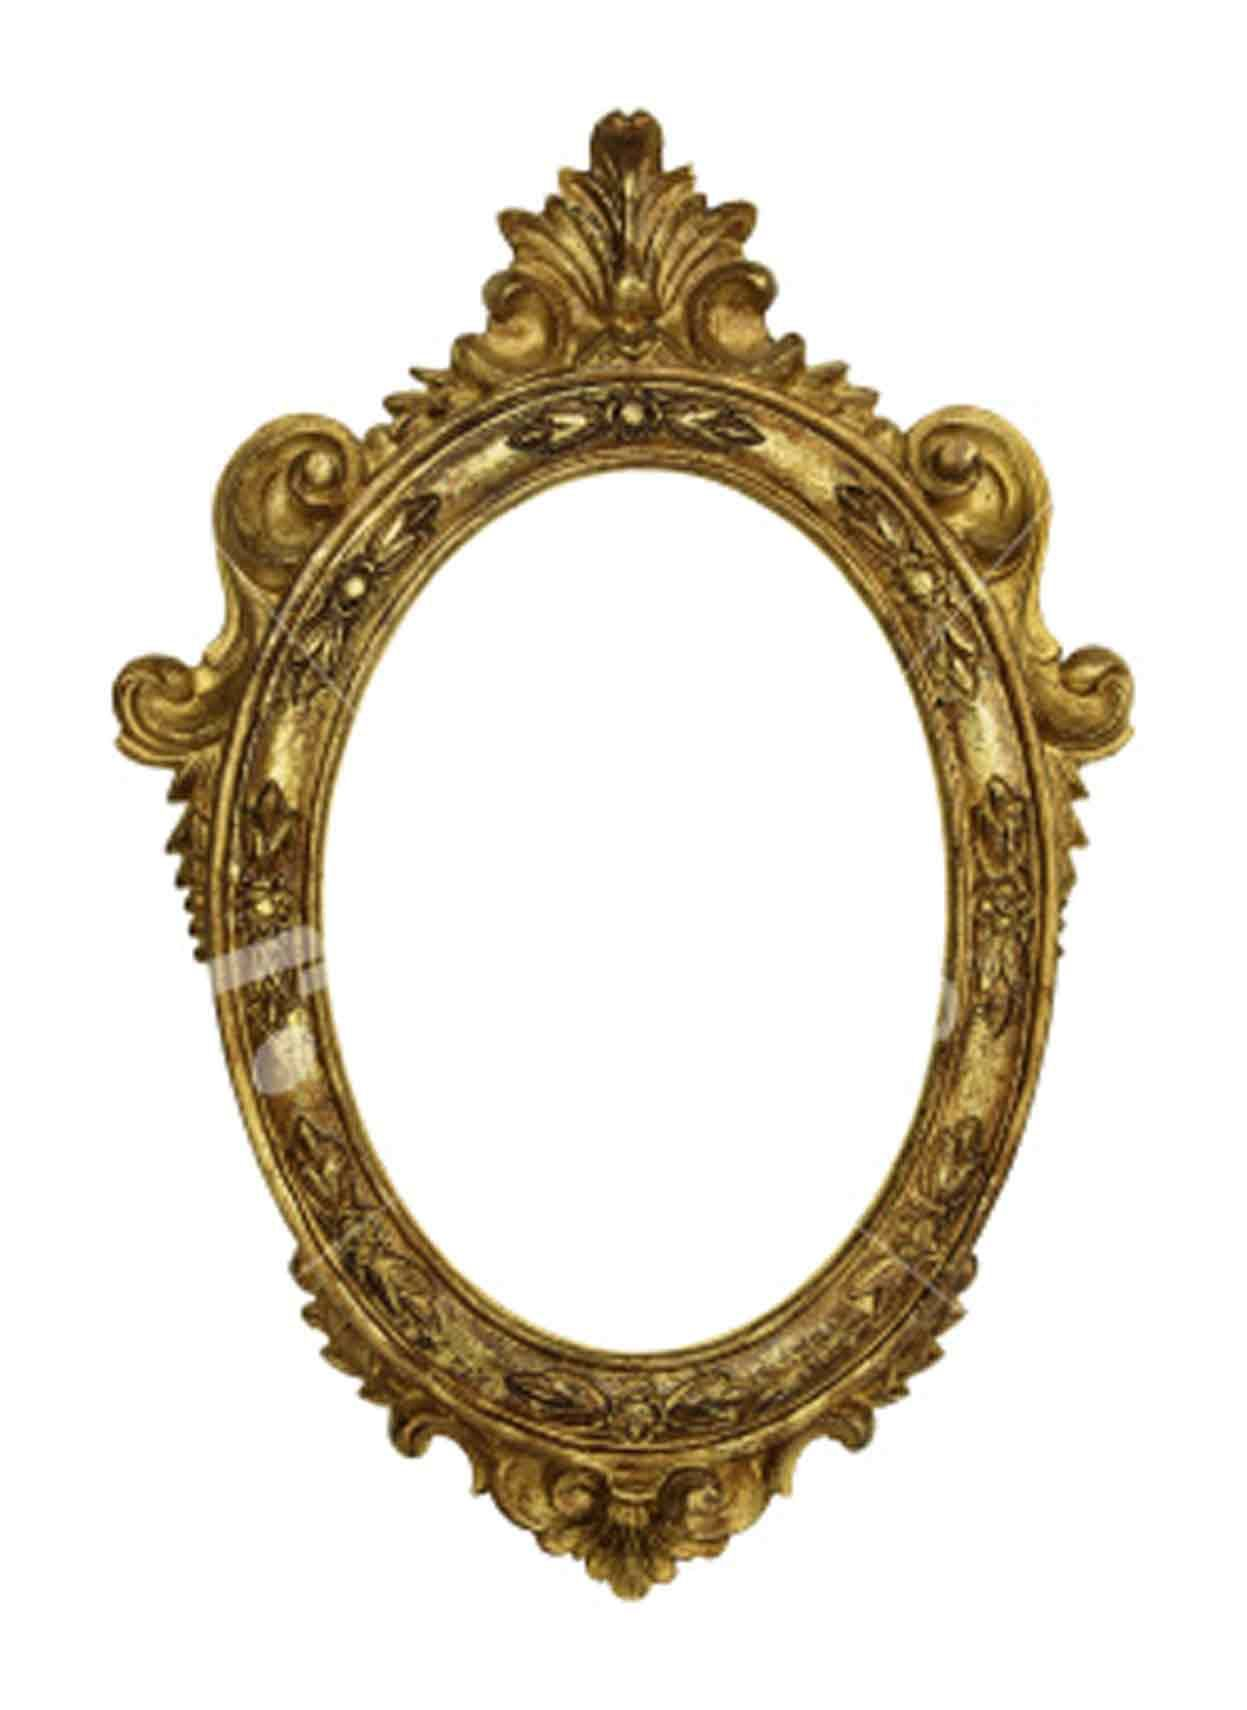 Old fashioned gold frame ornate gold frame old picture for Old style mirror